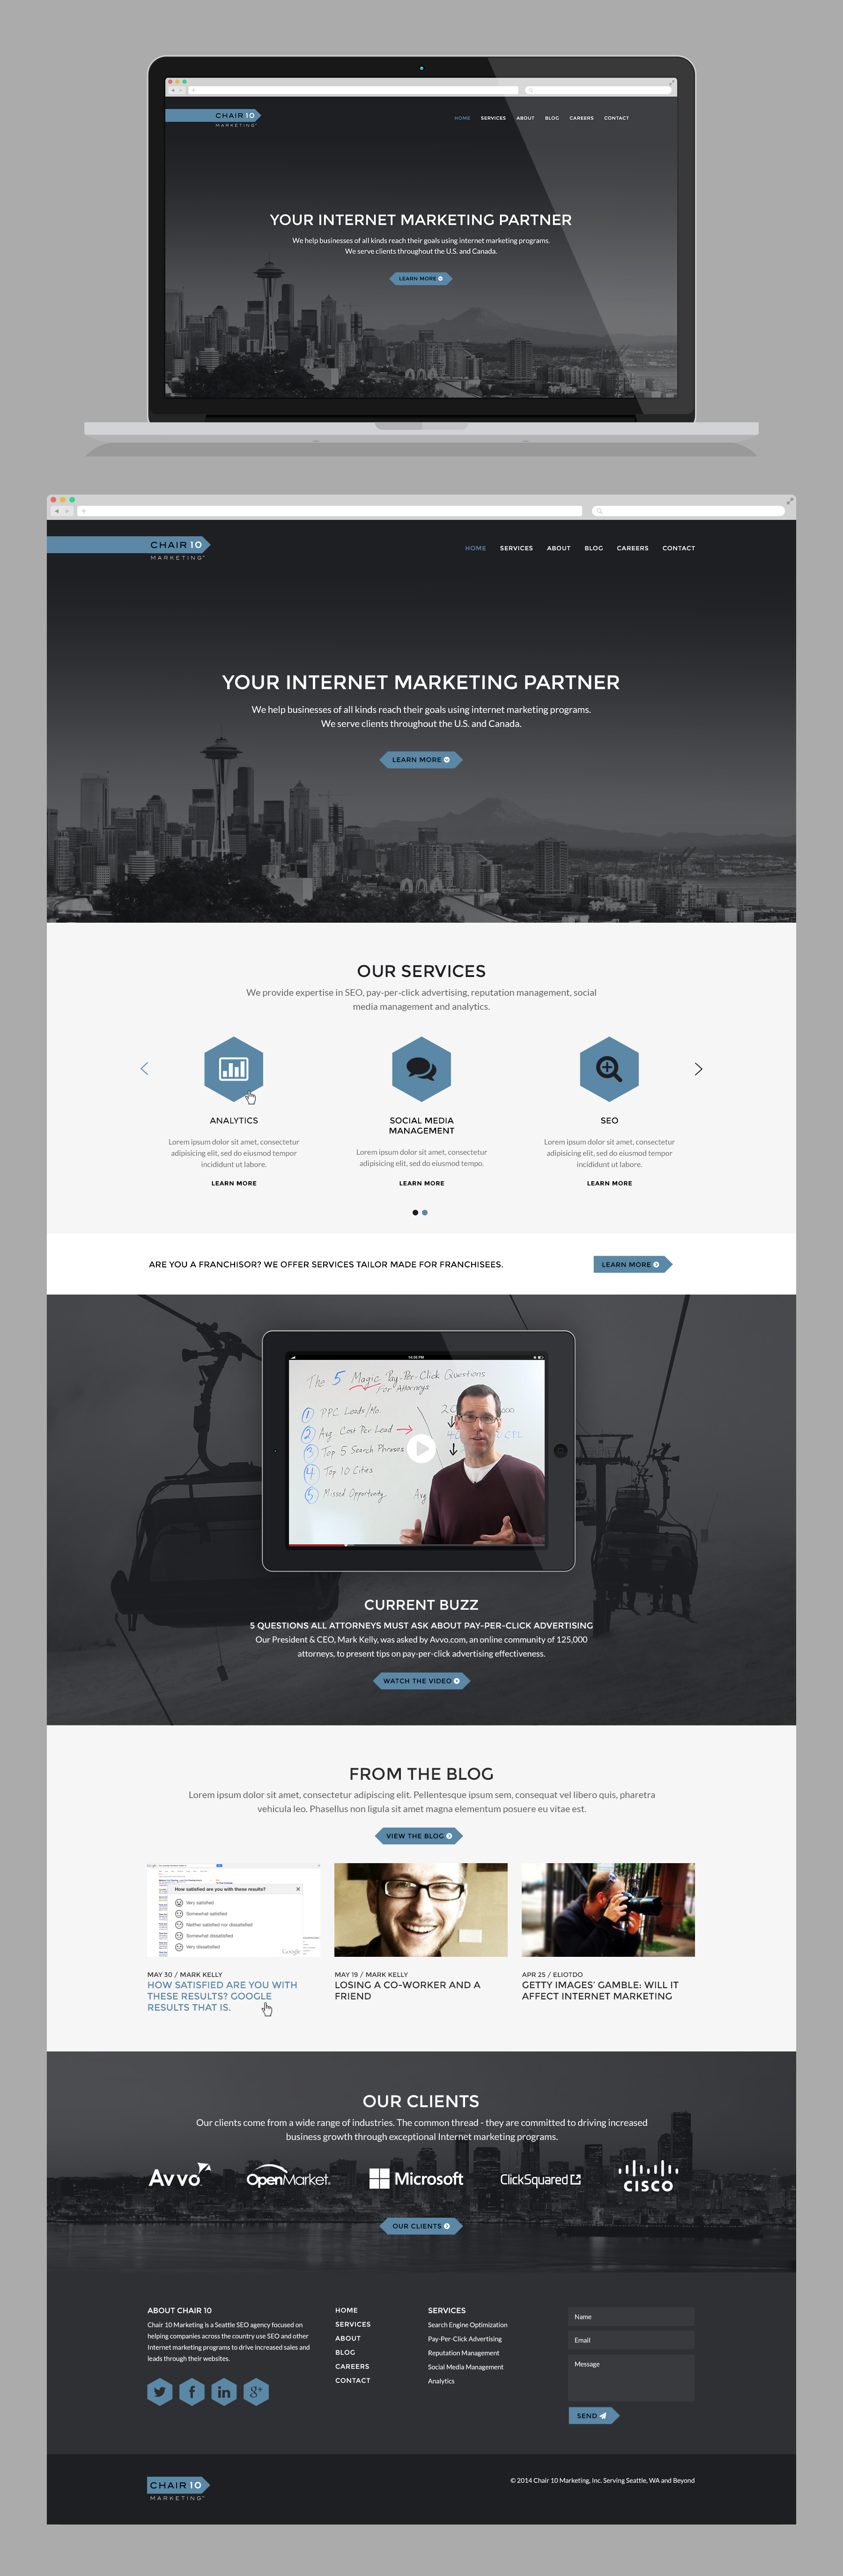 Create a memorable and modern website for Chair 10 Marketing